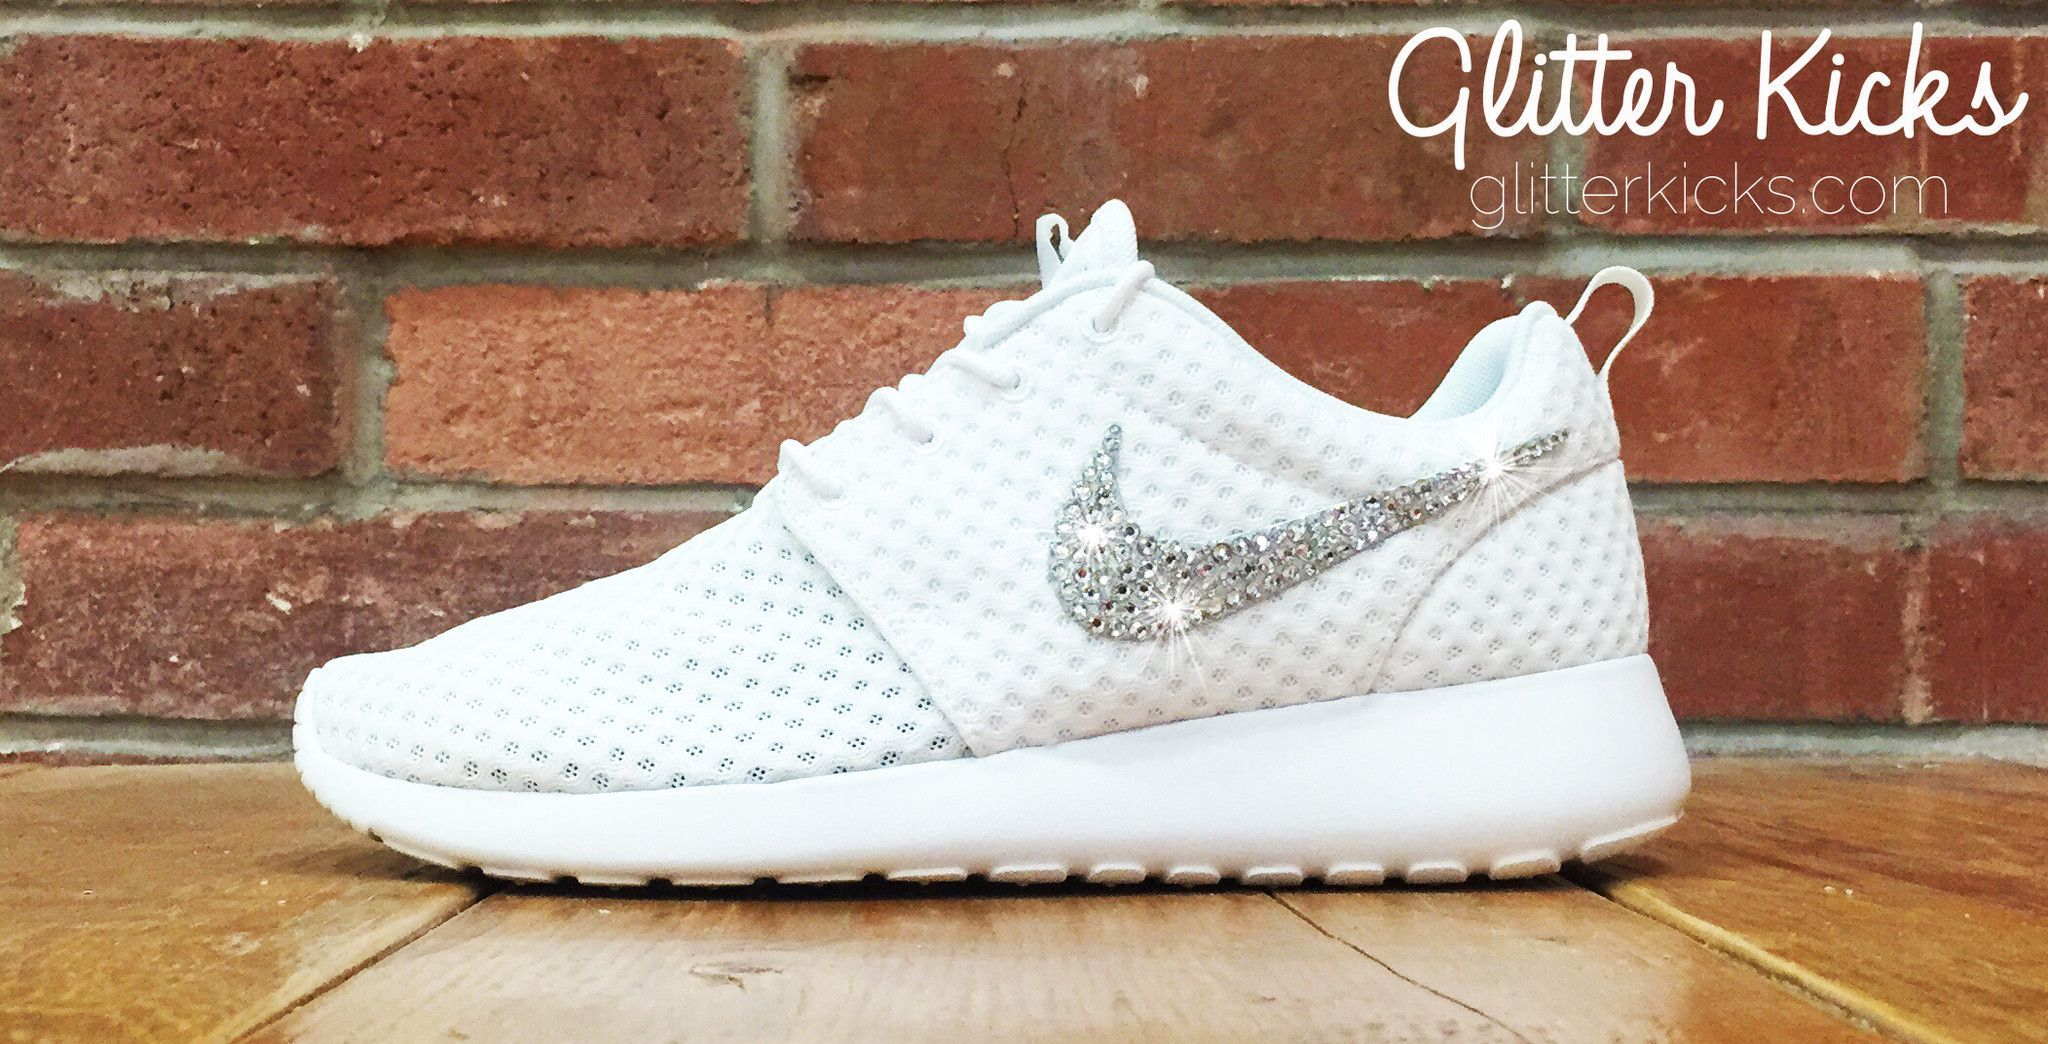 Women s Nike Roshe One Breeze Casual Shoes By Glitter Kicks - Customized  With Swarovski Elements Crystal Rhinestones - White White - glitter nikes ed09de570a